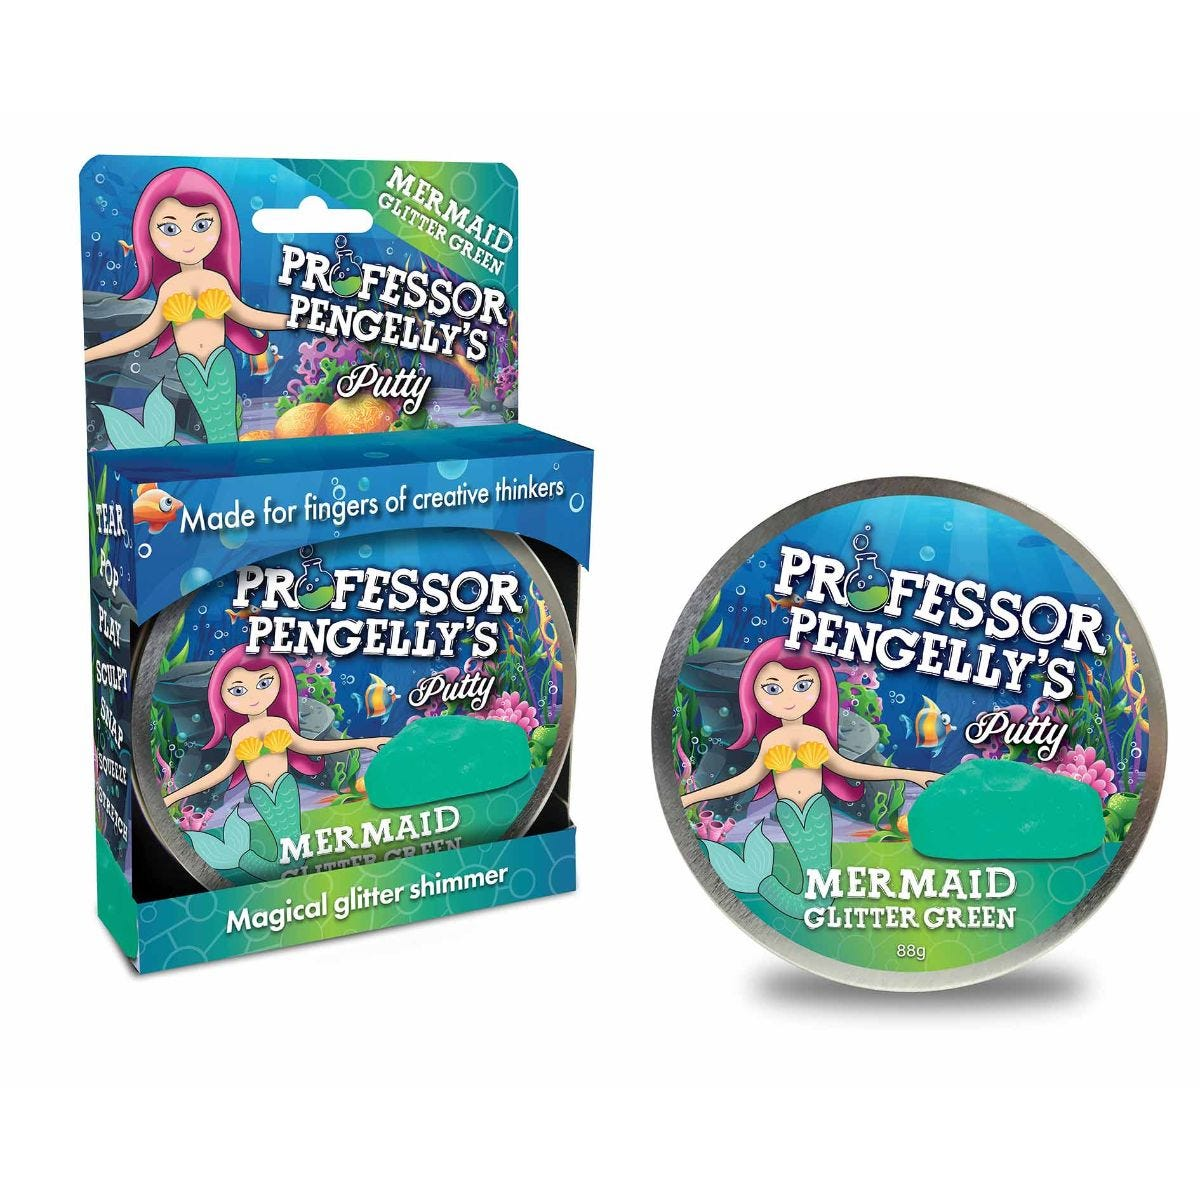 Image of Professor Pengelly's Putty Mermaid Green Glitter, Green